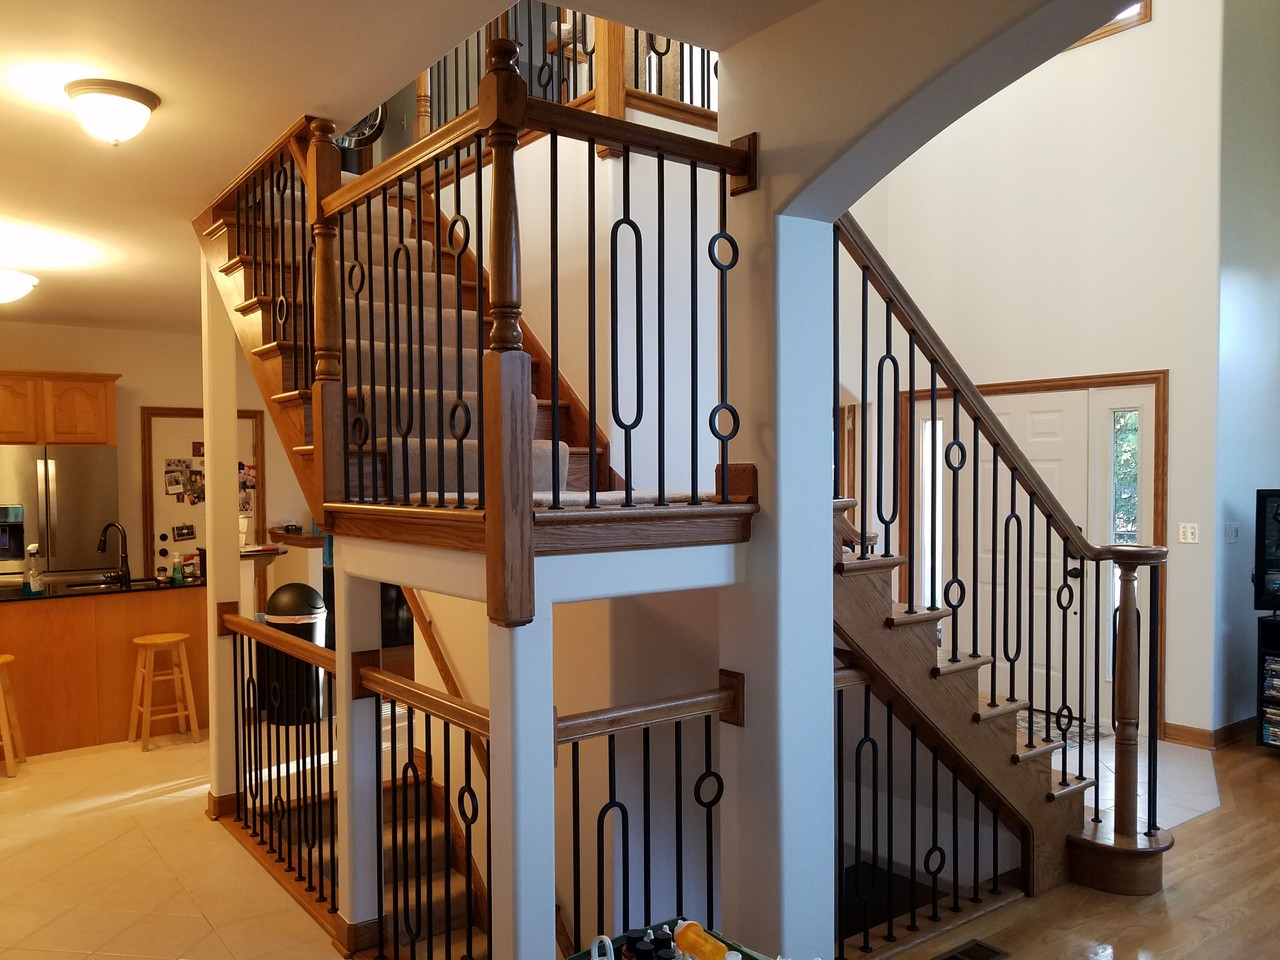 Hf16 6 2 Oval Tubular Steel Baluster Westfire Stair Parts   Tubular Design For Stairs   Finished   Minimalist   Decorative Wood Railing   Contemporary   Home Tower